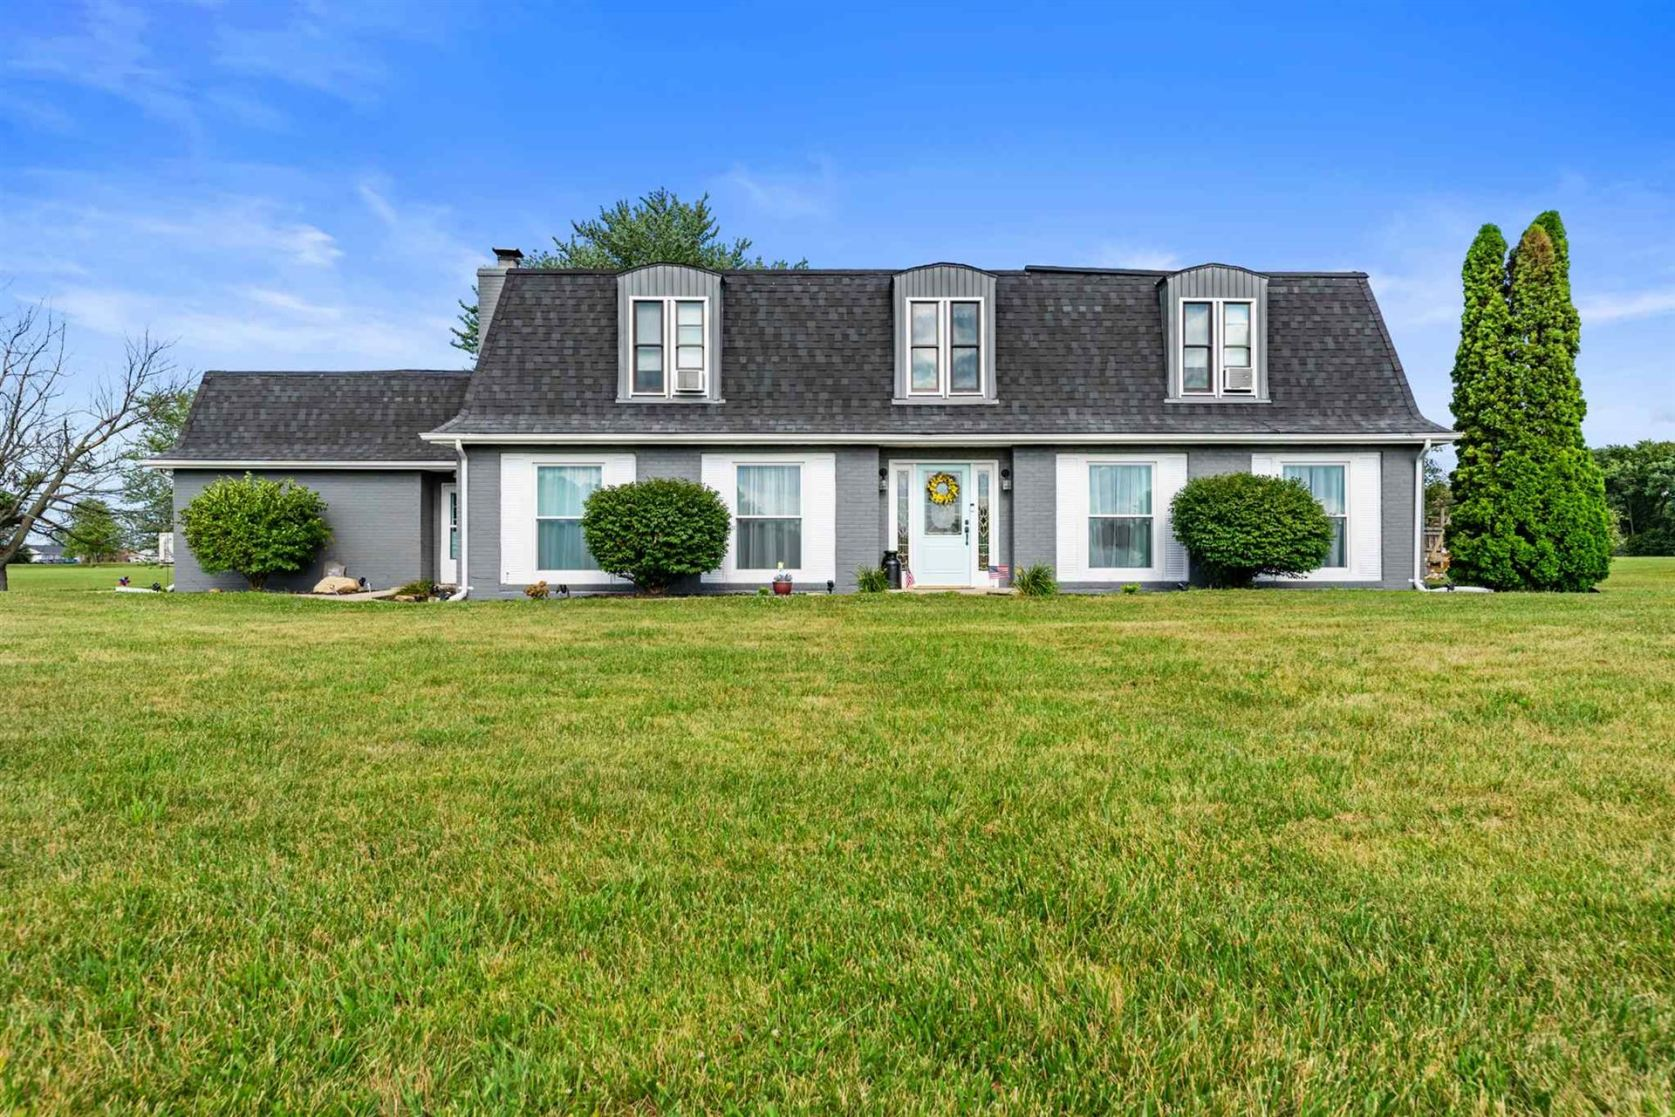 Photo of 7400 S County Road 560 E, Selma, IN 47383 (MLS # 202026825)